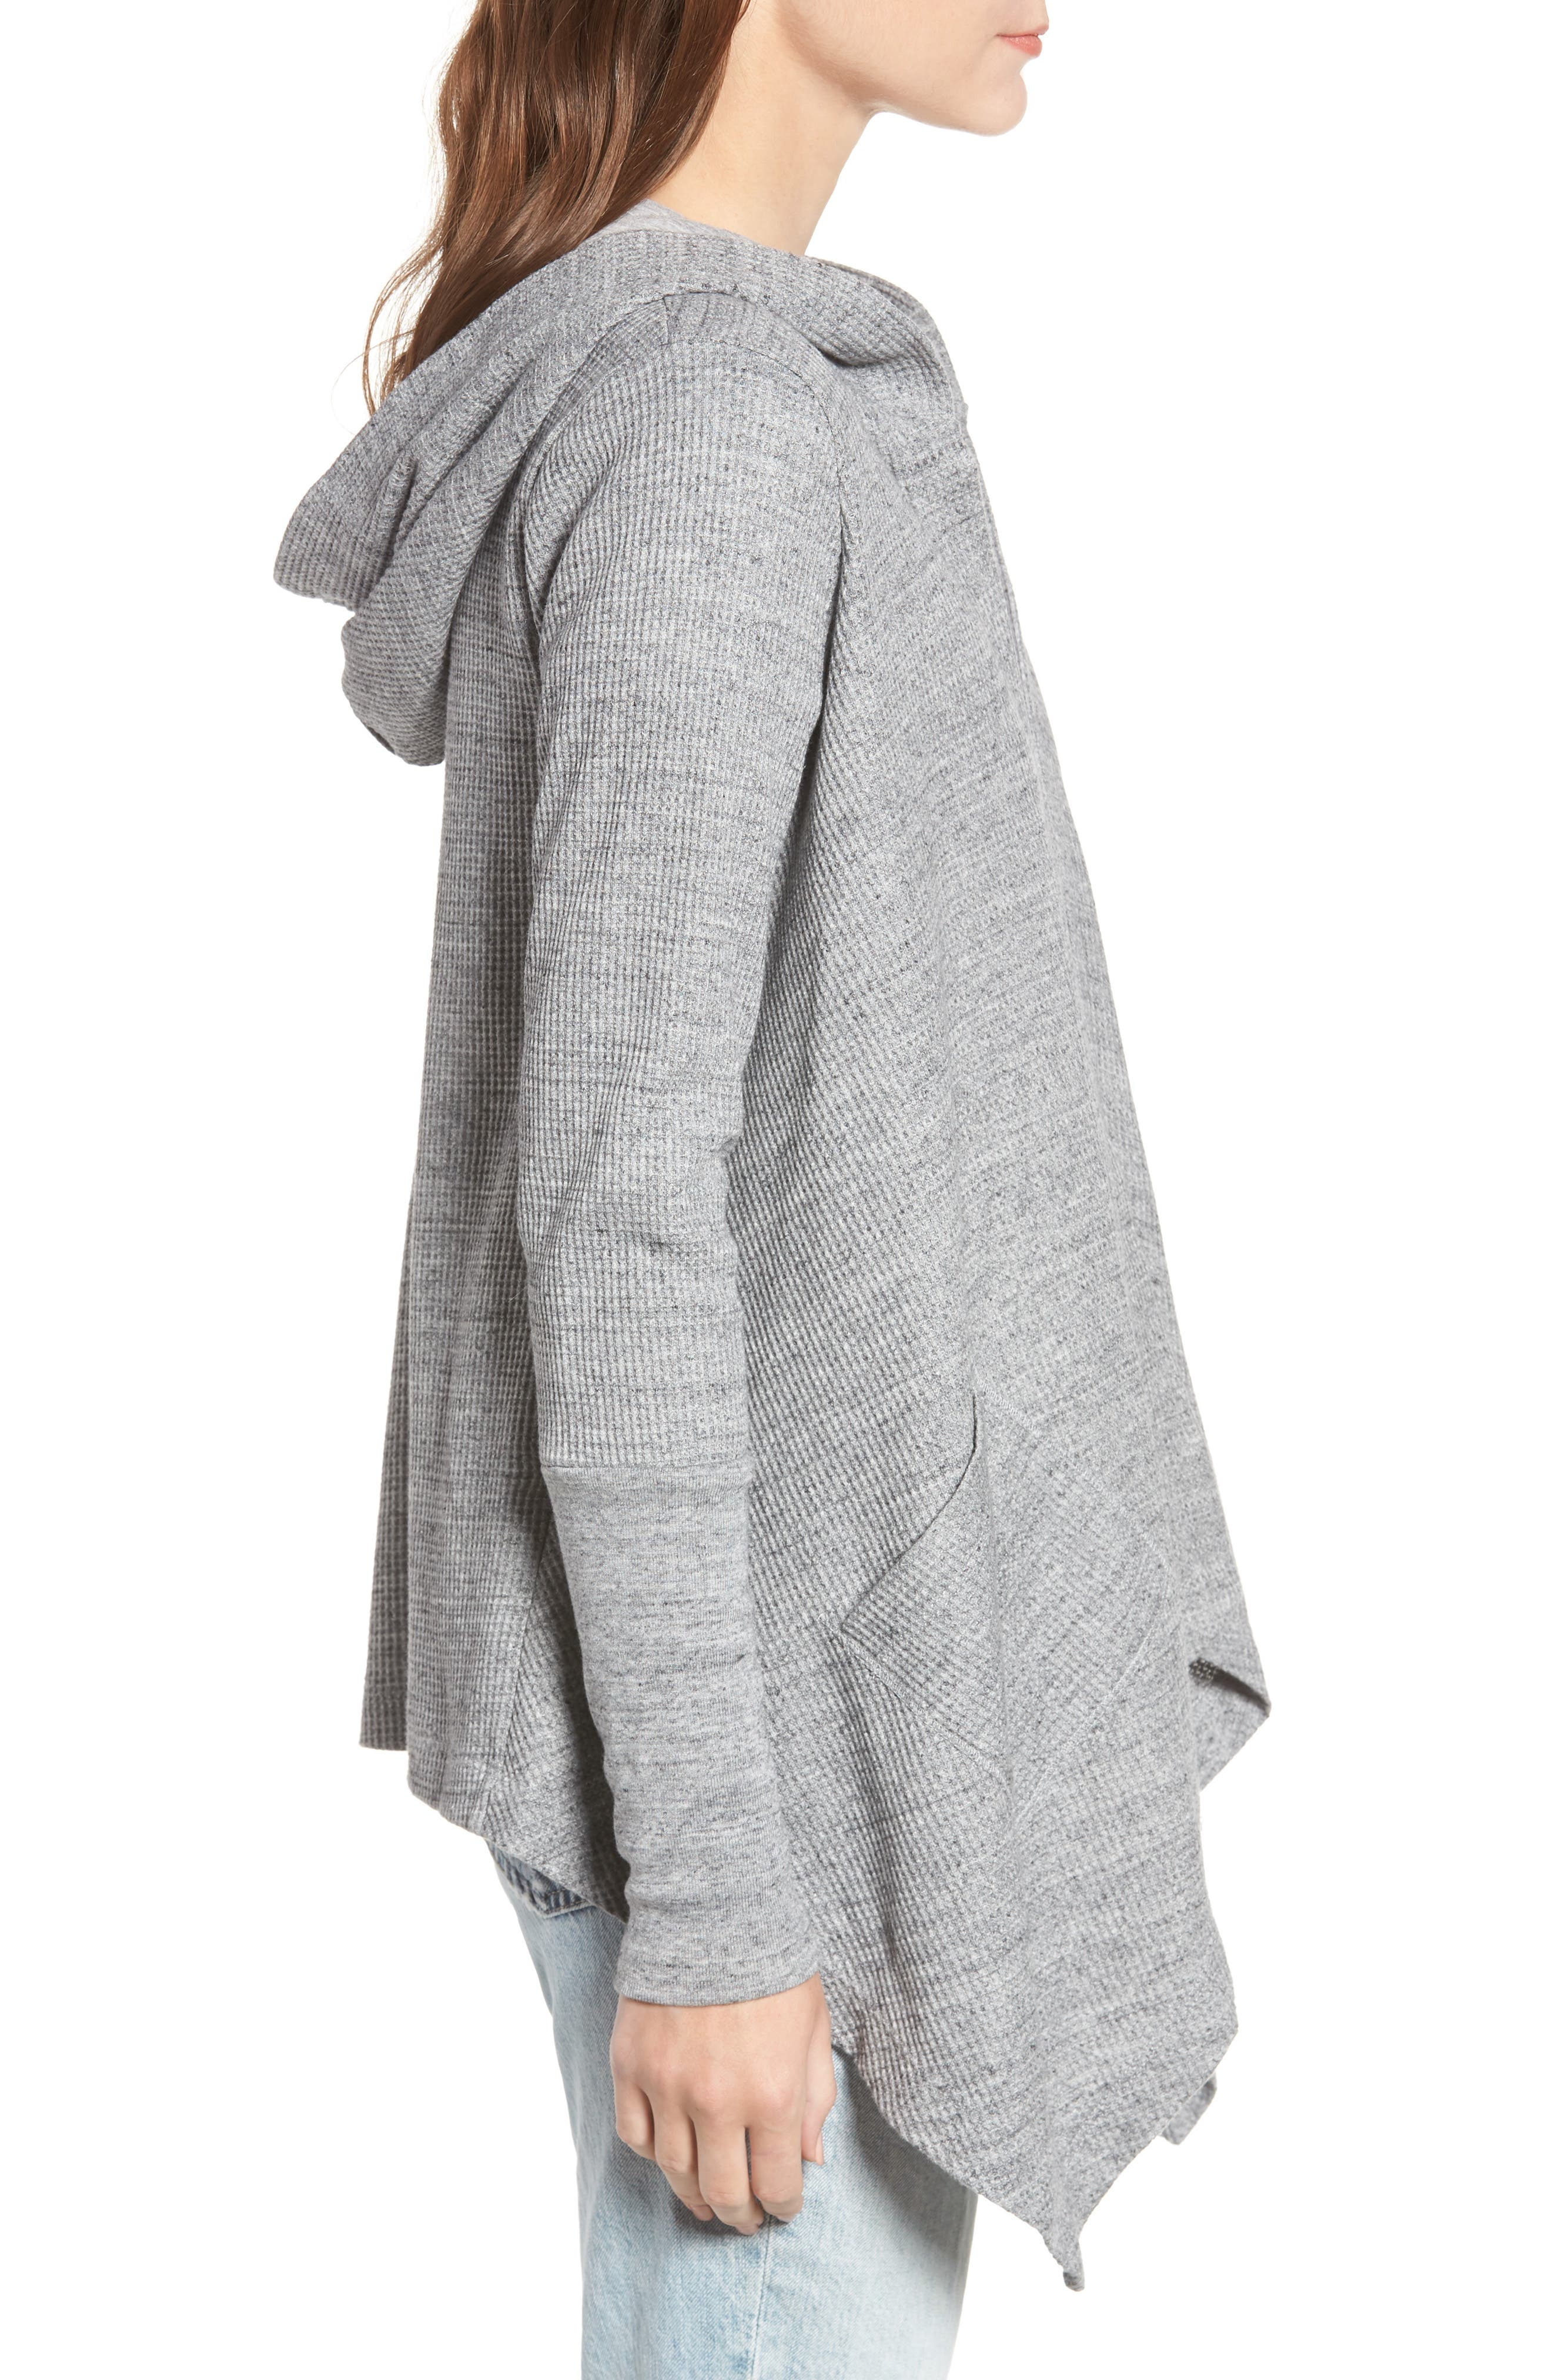 Thermal Hooded Cardigan,                             Alternate thumbnail 3, color,                             GRAVEL HEATHER GREY